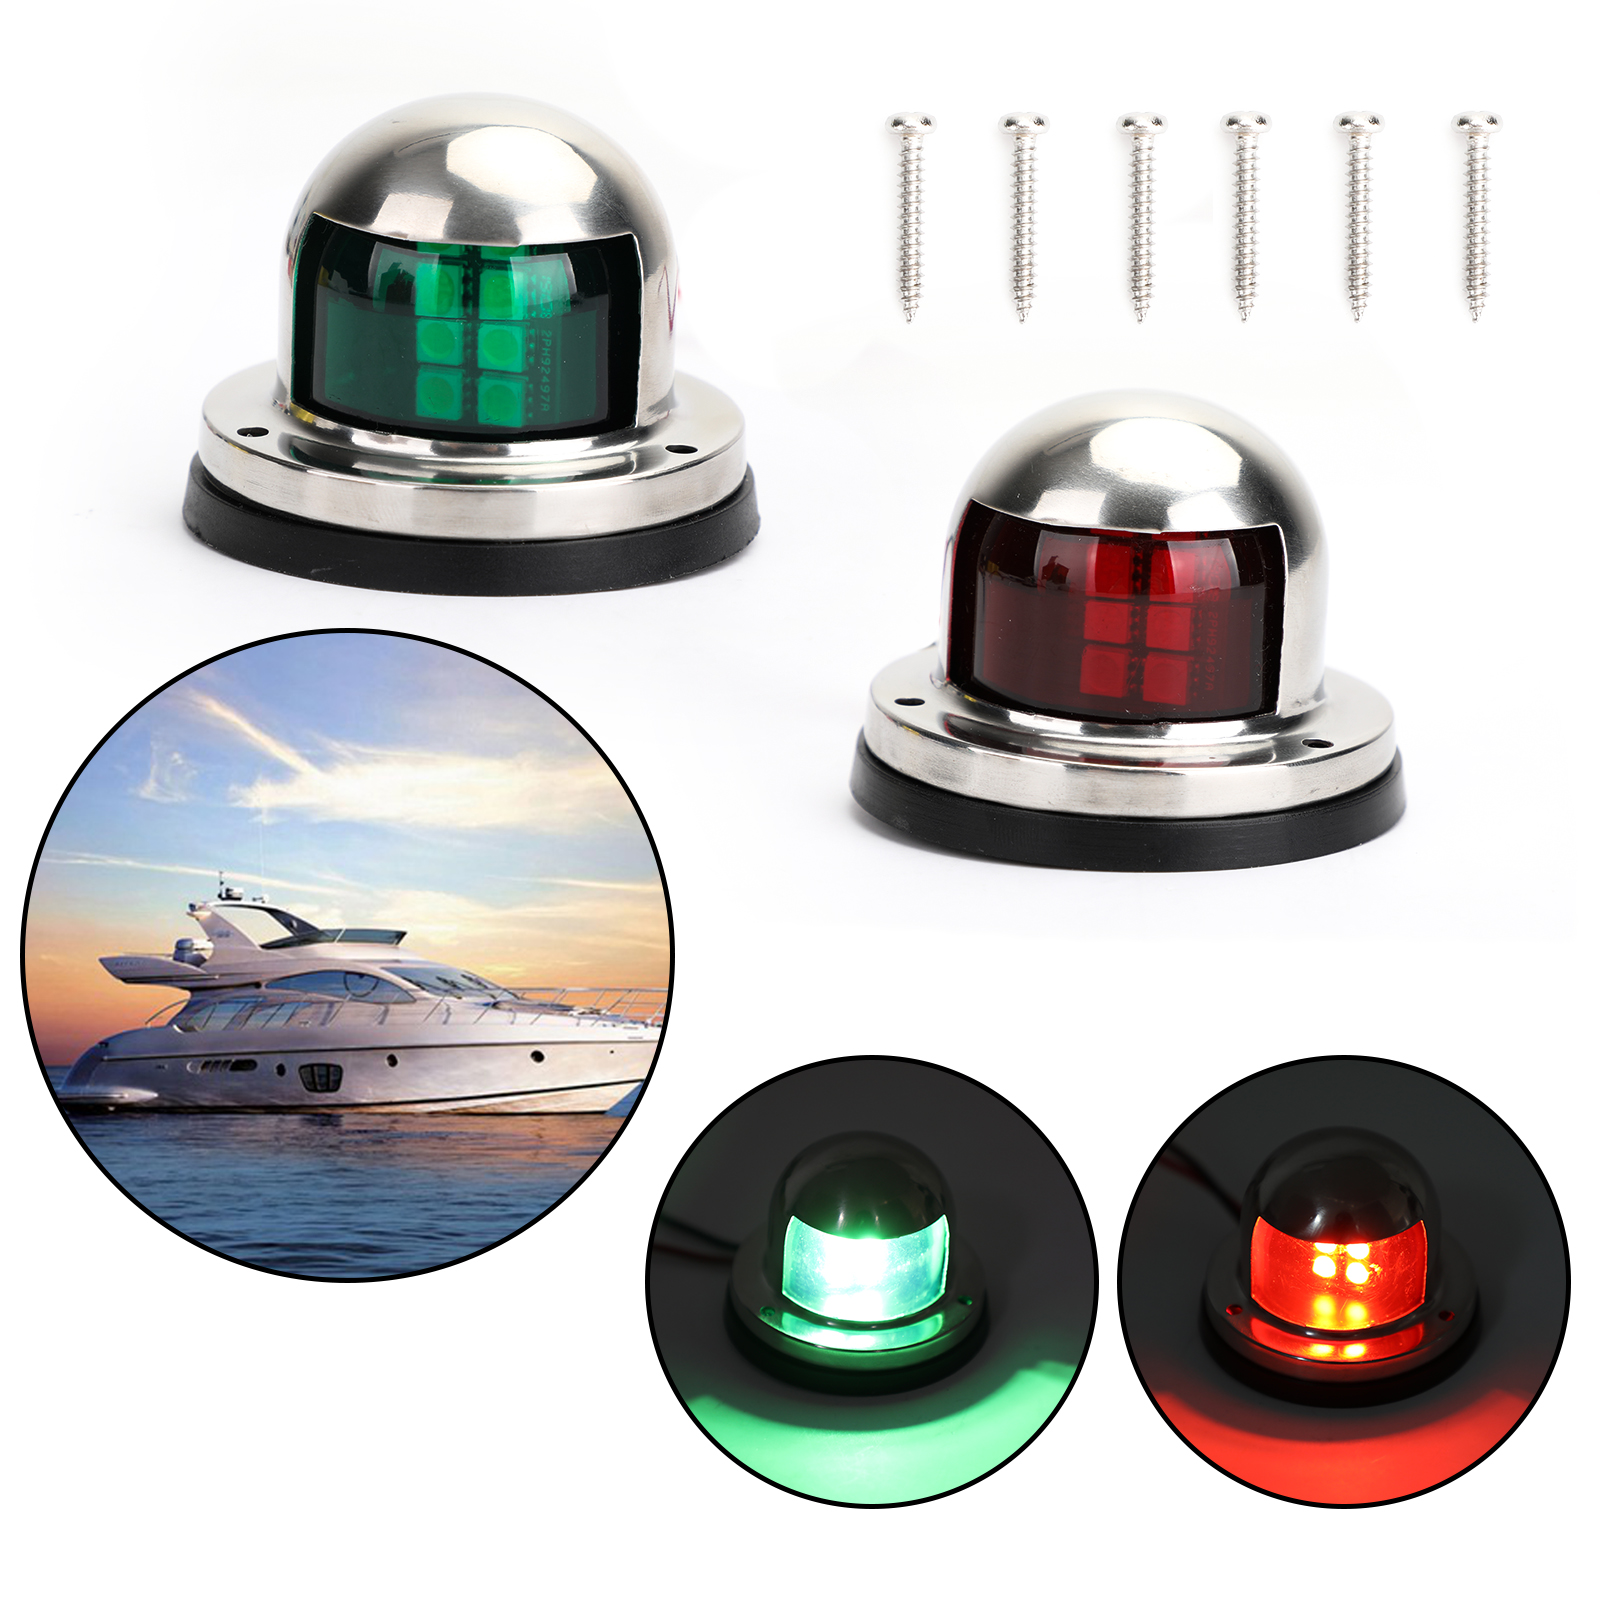 Areyourshop 8 LED Marine Bow Boat Yacht Navigation Green Red Light 12V Stainless Steel 2PCS for Car Boat Parts